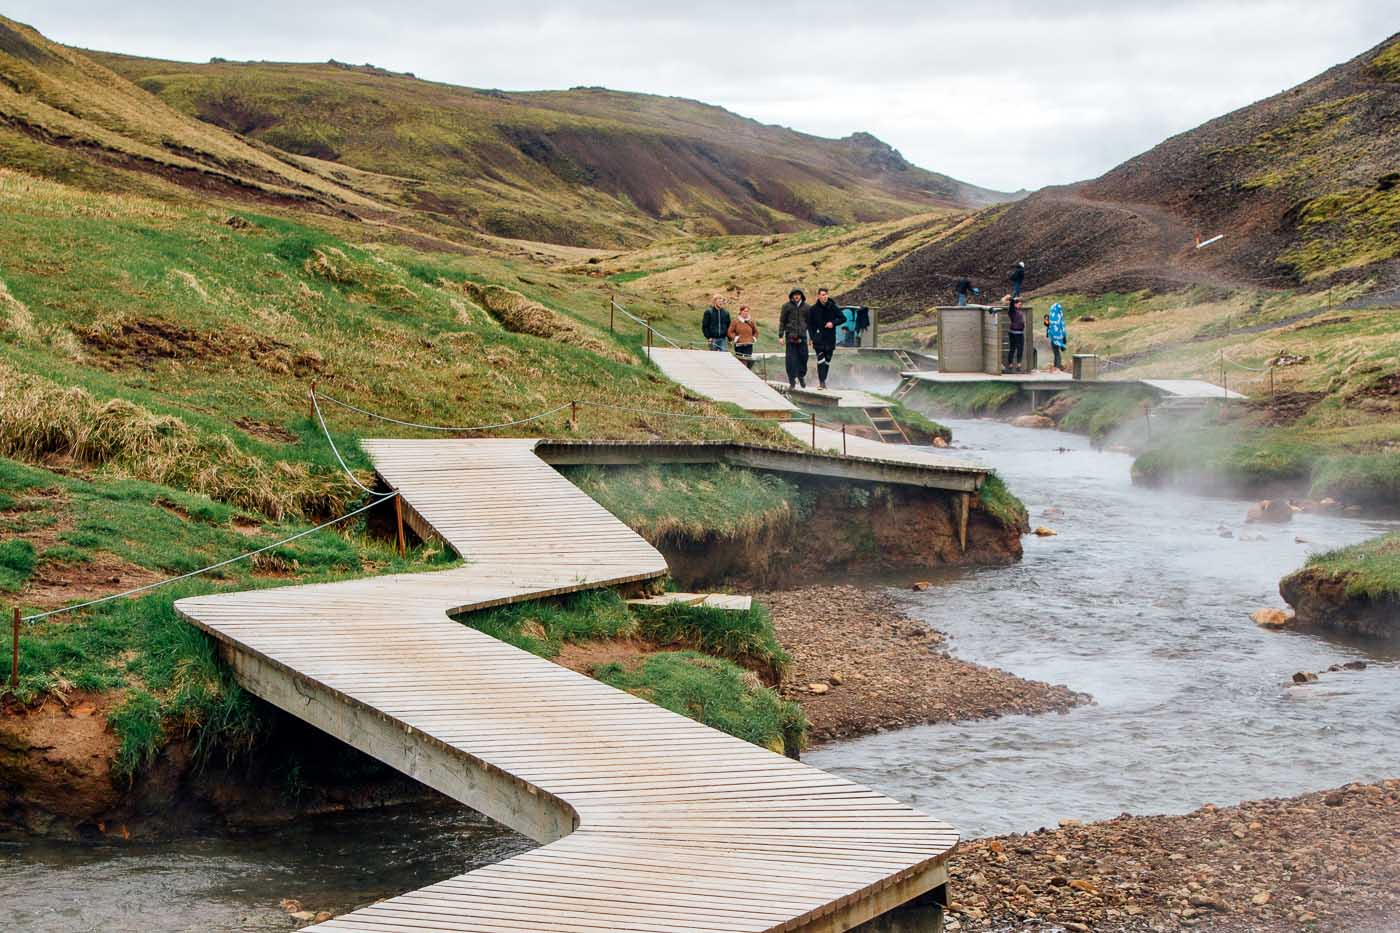 A wooden boardwalk winding around the Reykjadalur Hot Spring Thermal River